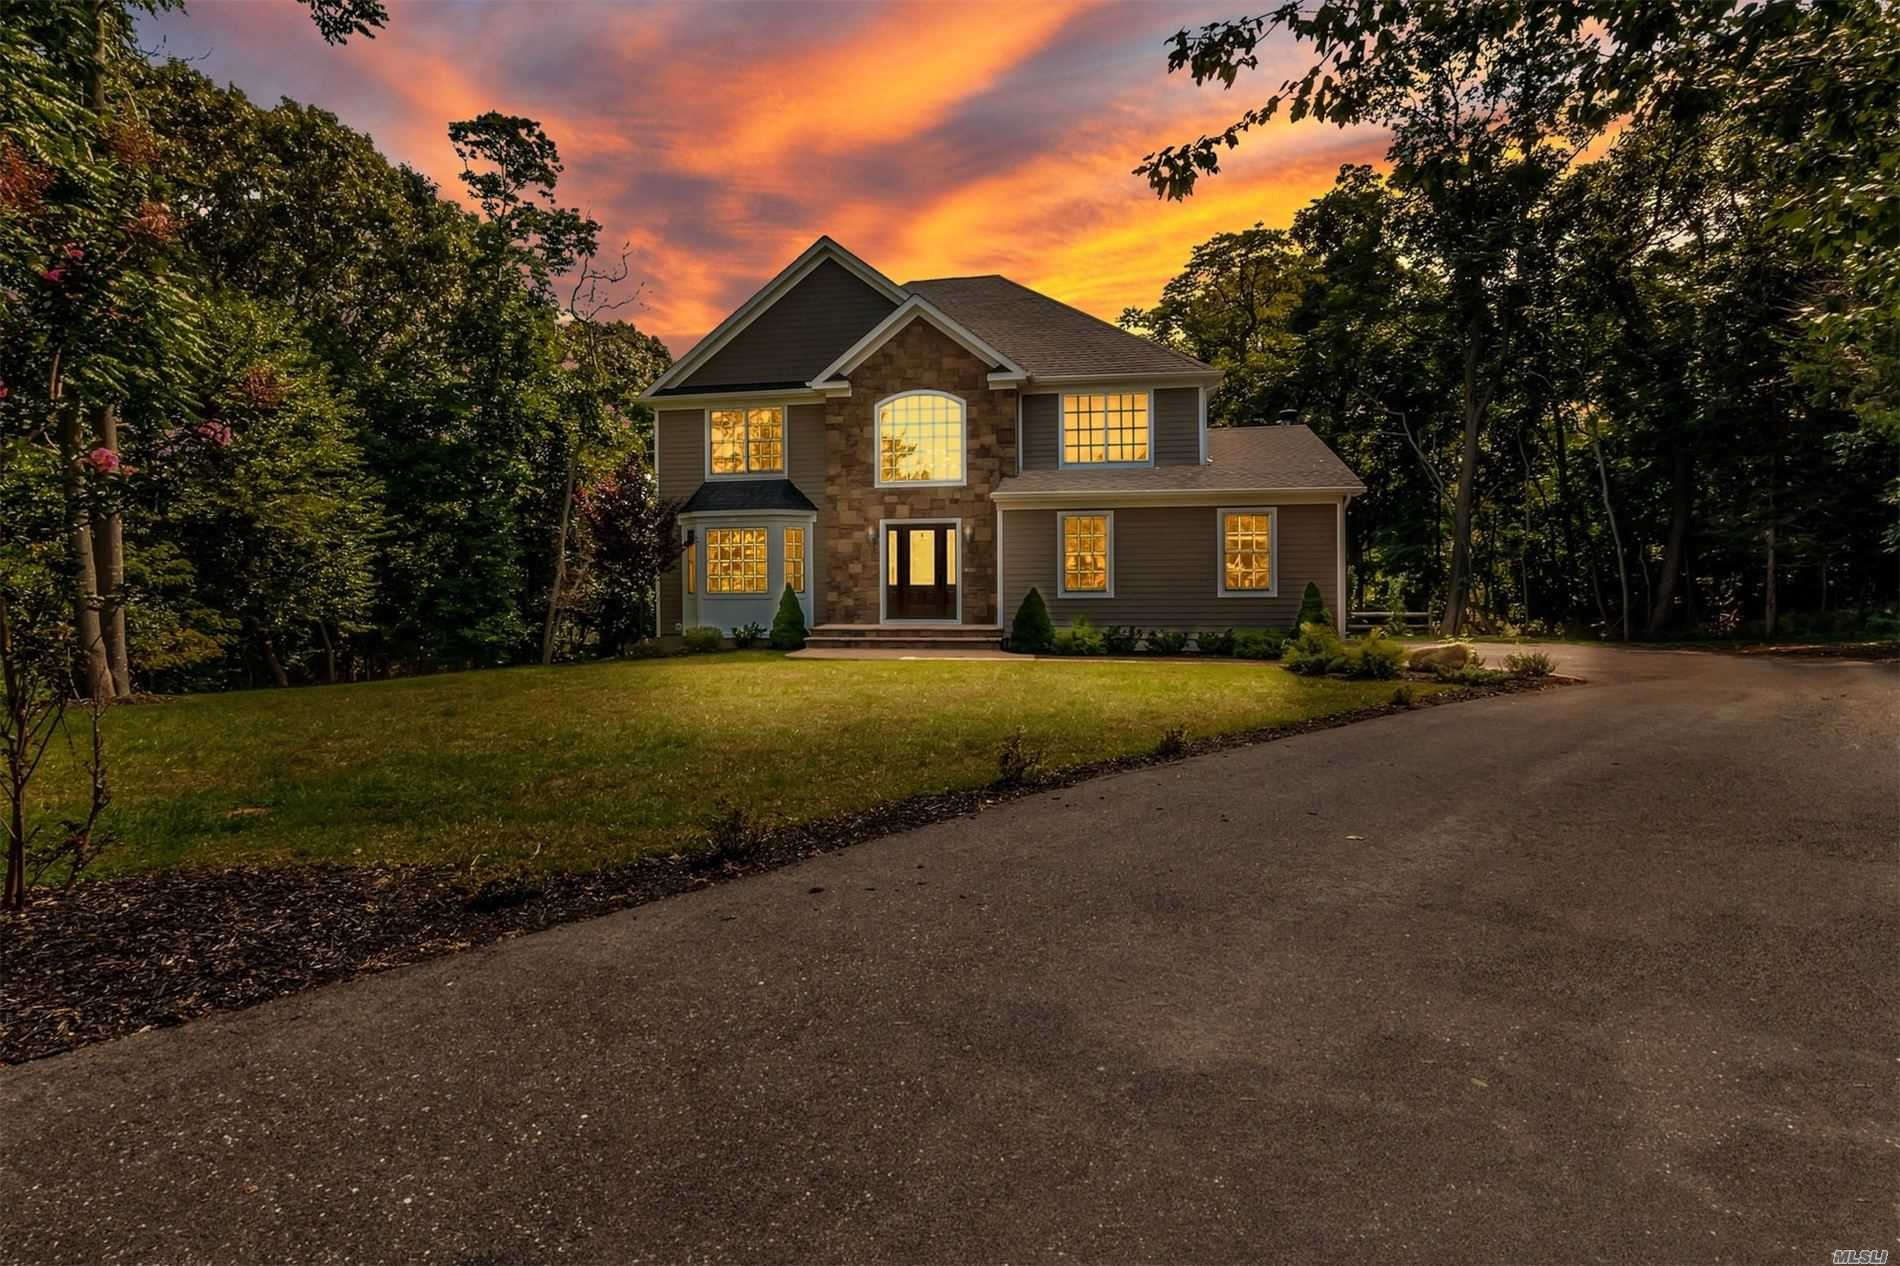 Pristine cul-de-sac home in Crescent on the Sound w/beach rights on 1.19 acres; features den w/fireplace;hardwood floors, oak stairs, Pella windows & doors, high-hats, peerless energy efficient burner;Hardi planked siding;gourmet white kitchen w/top-of-the-line stainless steel appliances, farm sink, granite w/waterfall center island;marble baths, full basement & 2 car garage